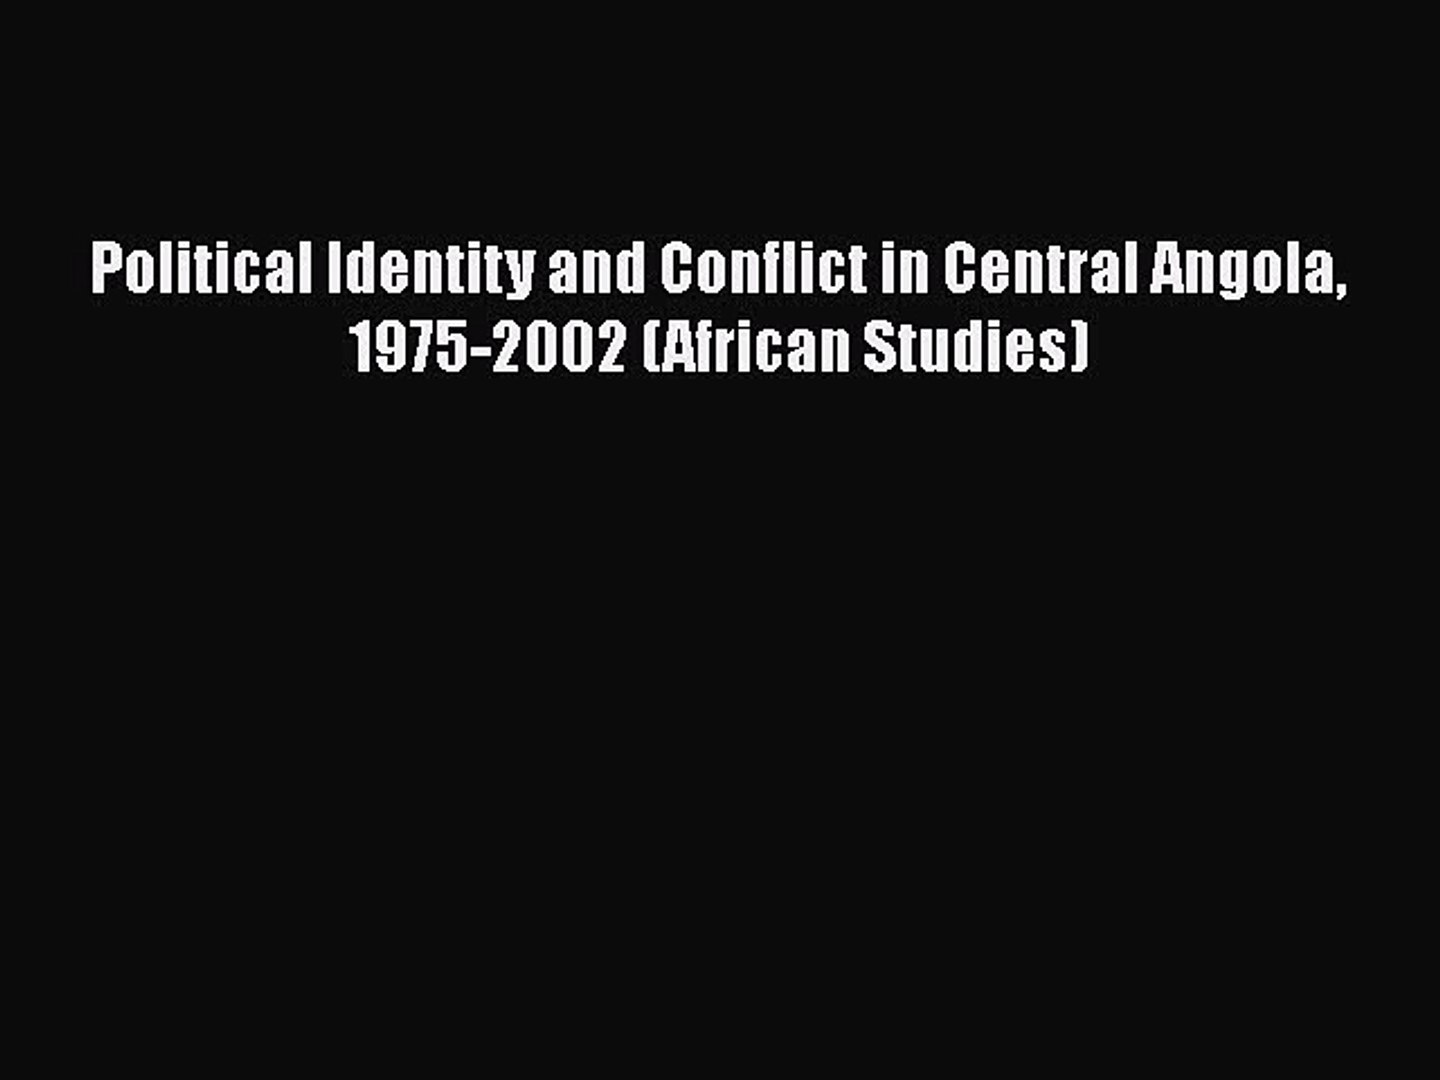 Read Political Identity and Conflict in Central Angola 1975-2002 (African Studies) PDF Online